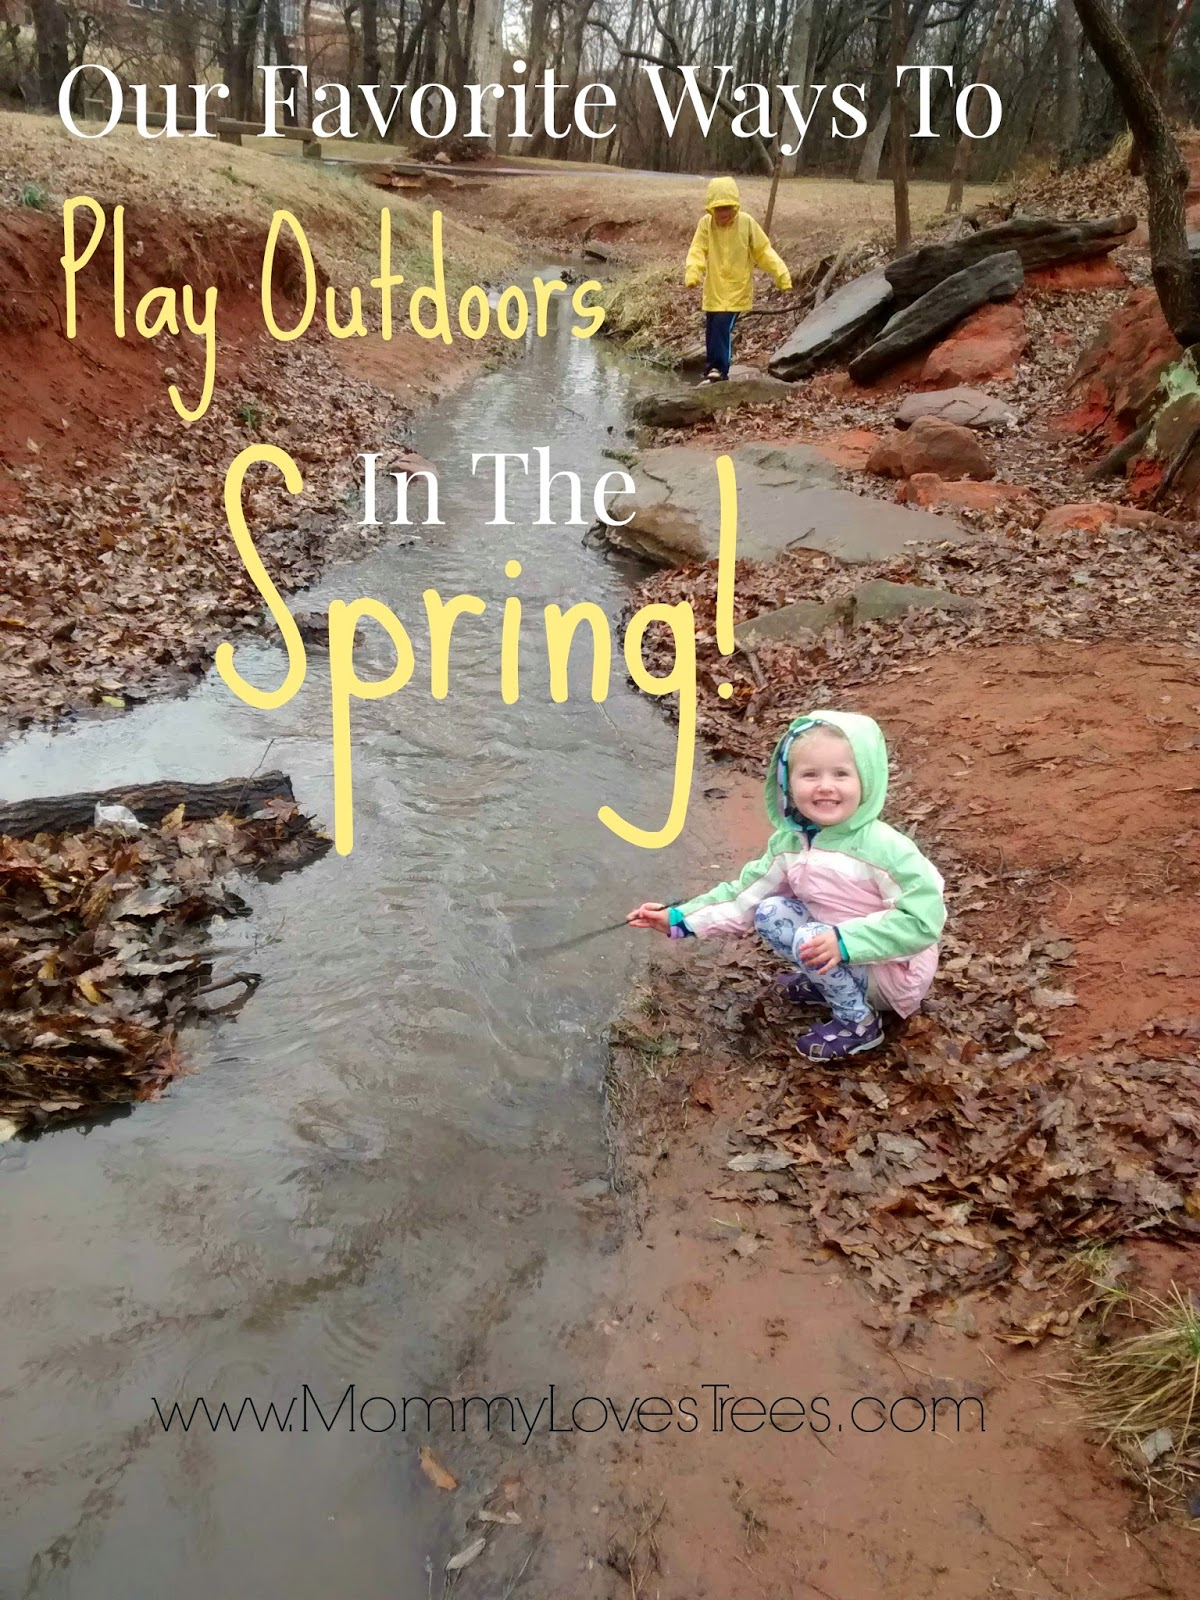 Our Favorite Ways To Play Outdoors In The Spring!